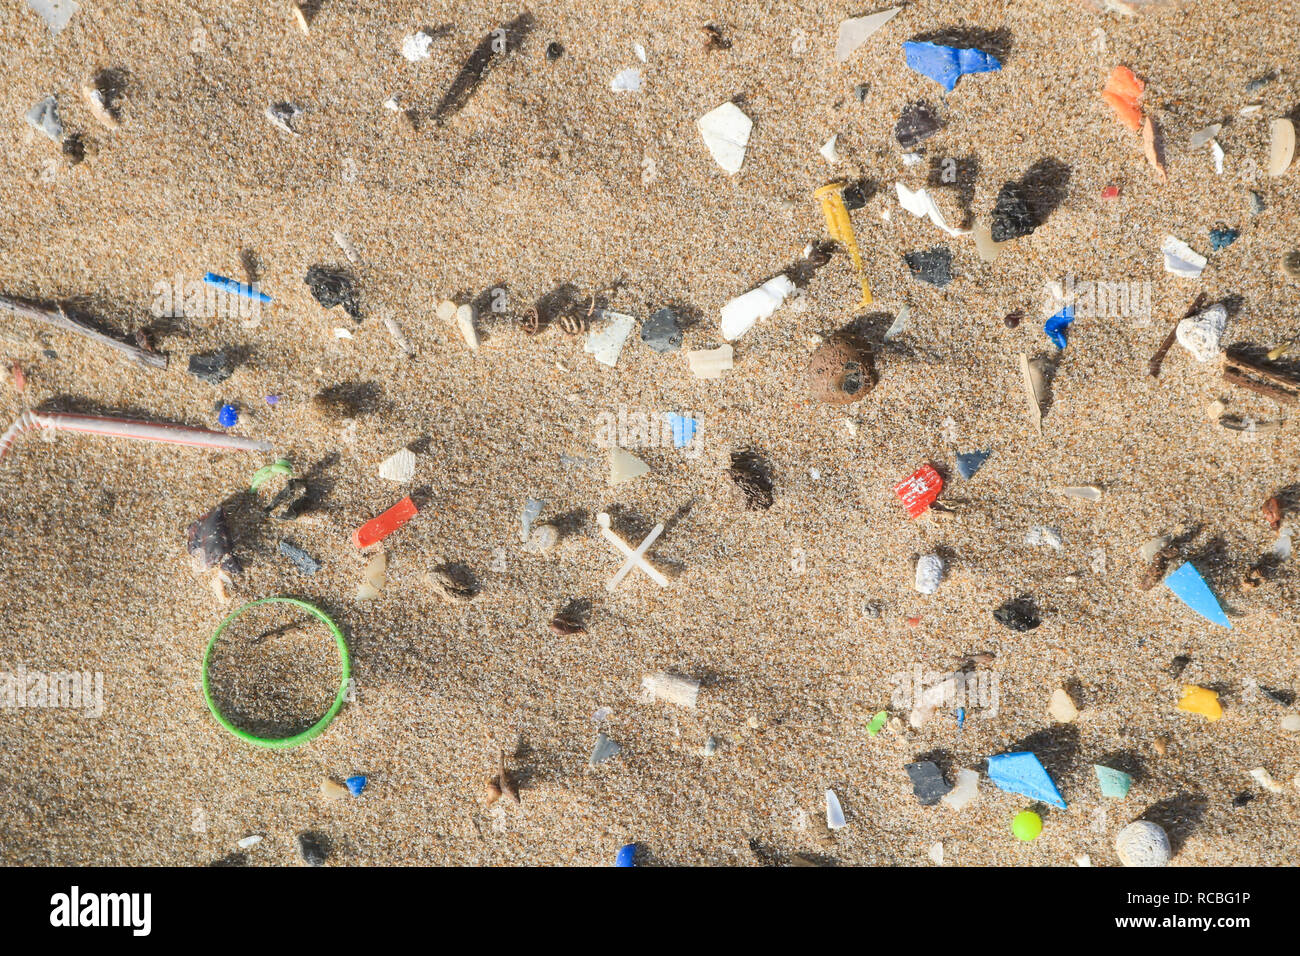 Beirut, Lebanon. 15th January 2019. Hundreds of micro plastic objects  are accumulated on a public beach in South Beirut. It is estimated that 1.1 to 8.8 million metric tons (MT) of plastic waste enters the ocean from coastal communities each year and marine animals have been  harmed by  entanglement in plastic objects Credit: amer ghazzal/Alamy Live News - Stock Image